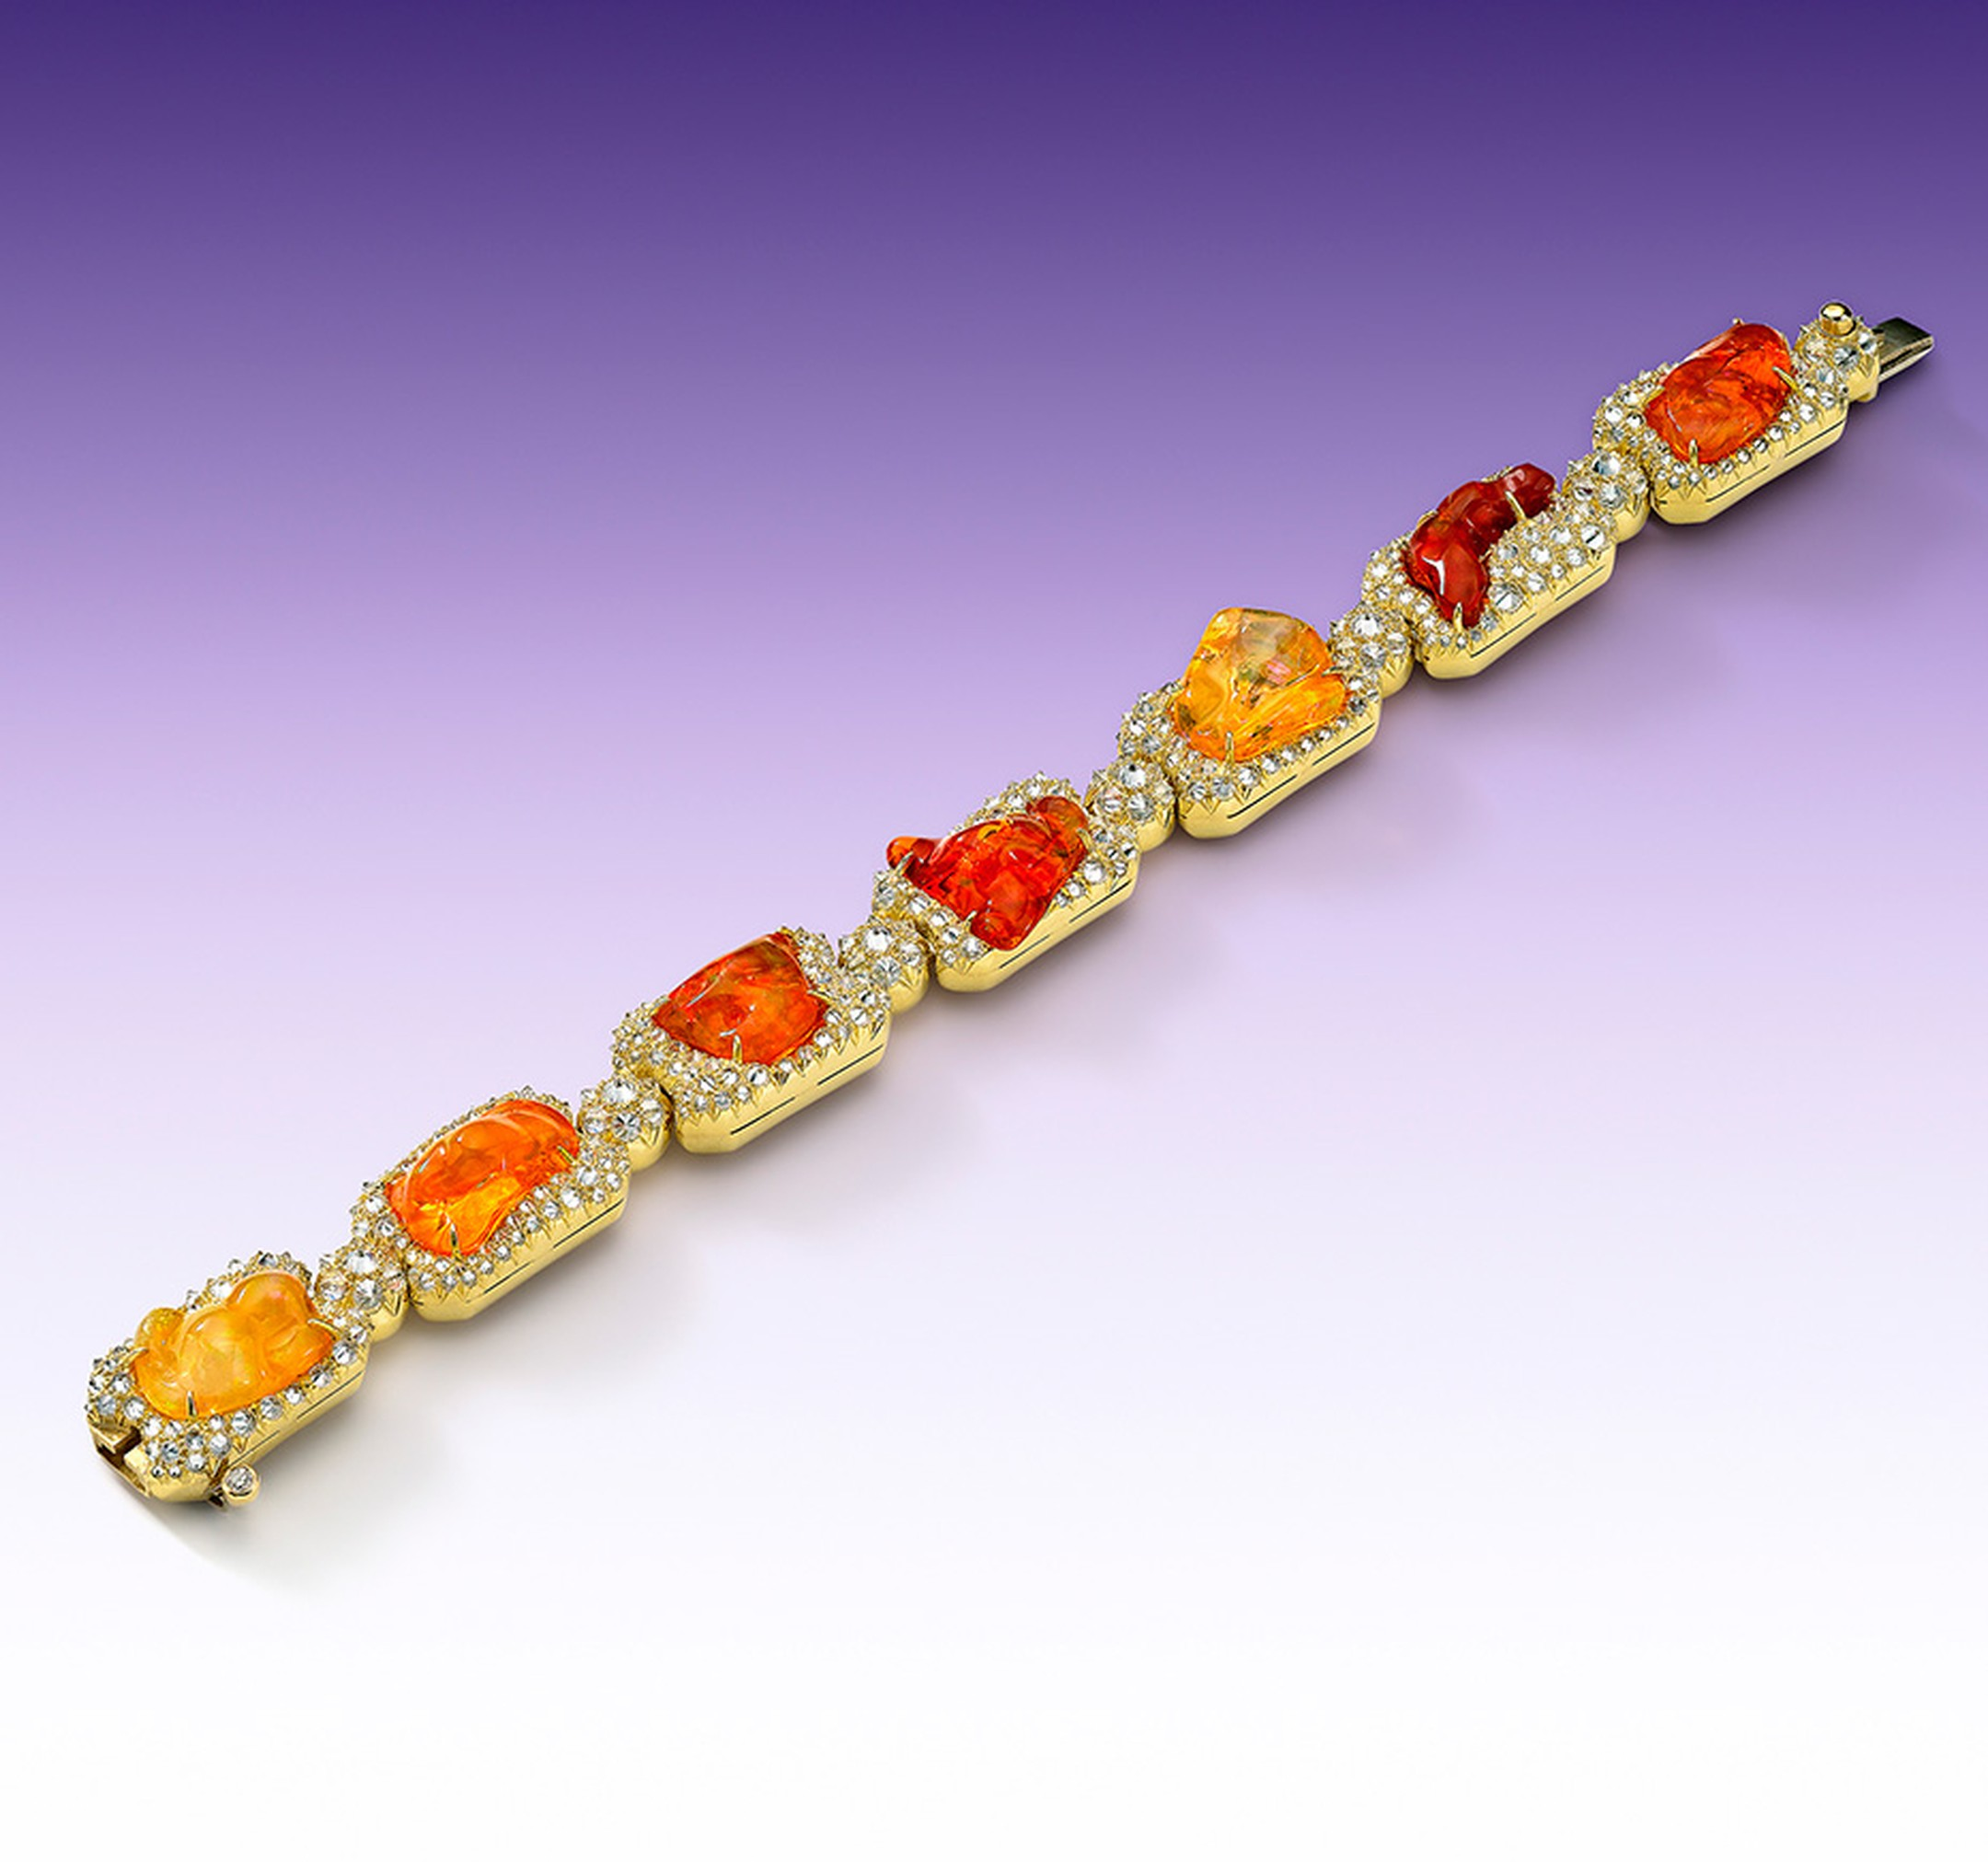 Nicholas Varney 2012 Upperline bracelet featuring fire opal, diamond and gold.